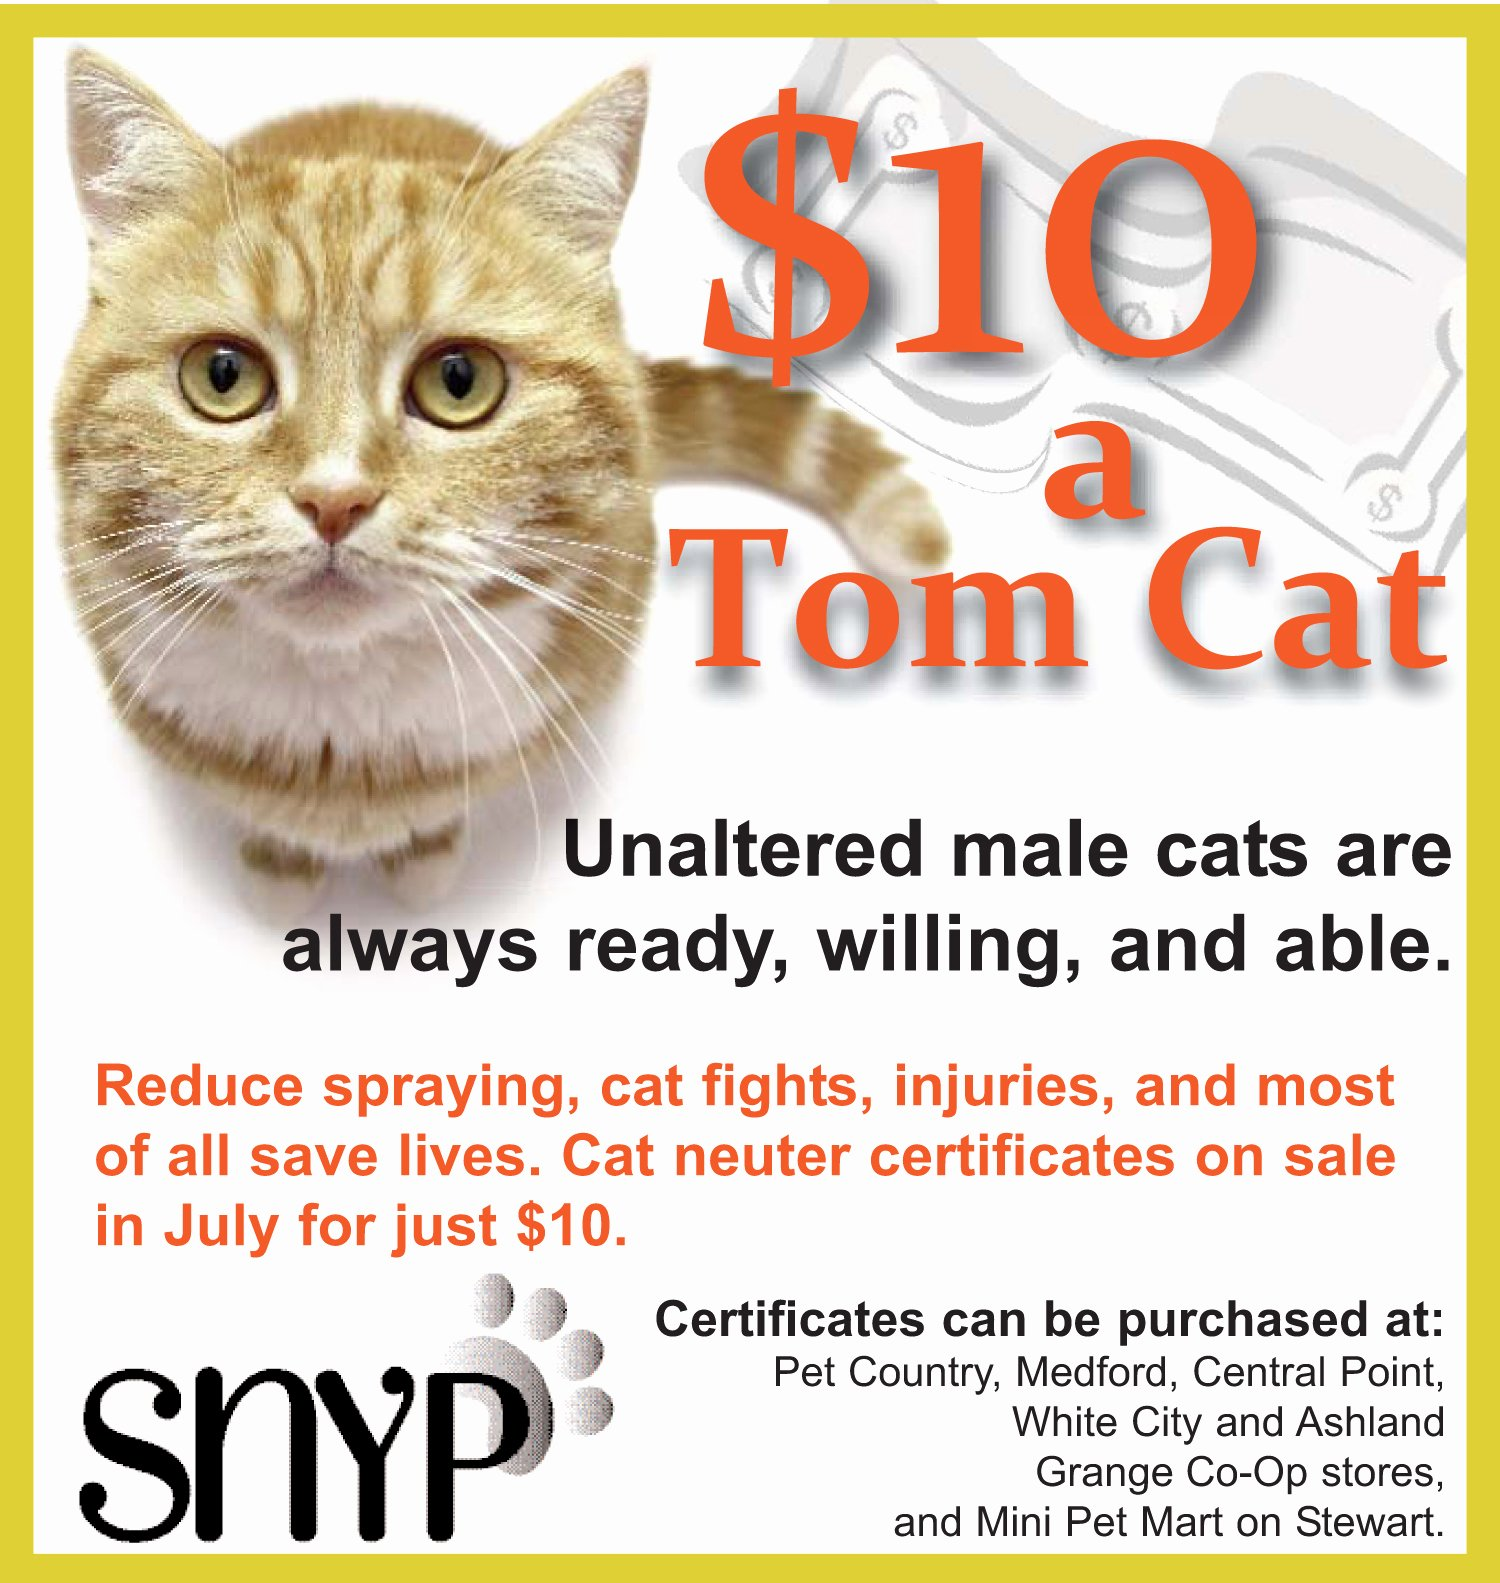 Spay Neuter Certificate Template Luxury $10 A tom Cat Neuter Certificates Available In July Spay